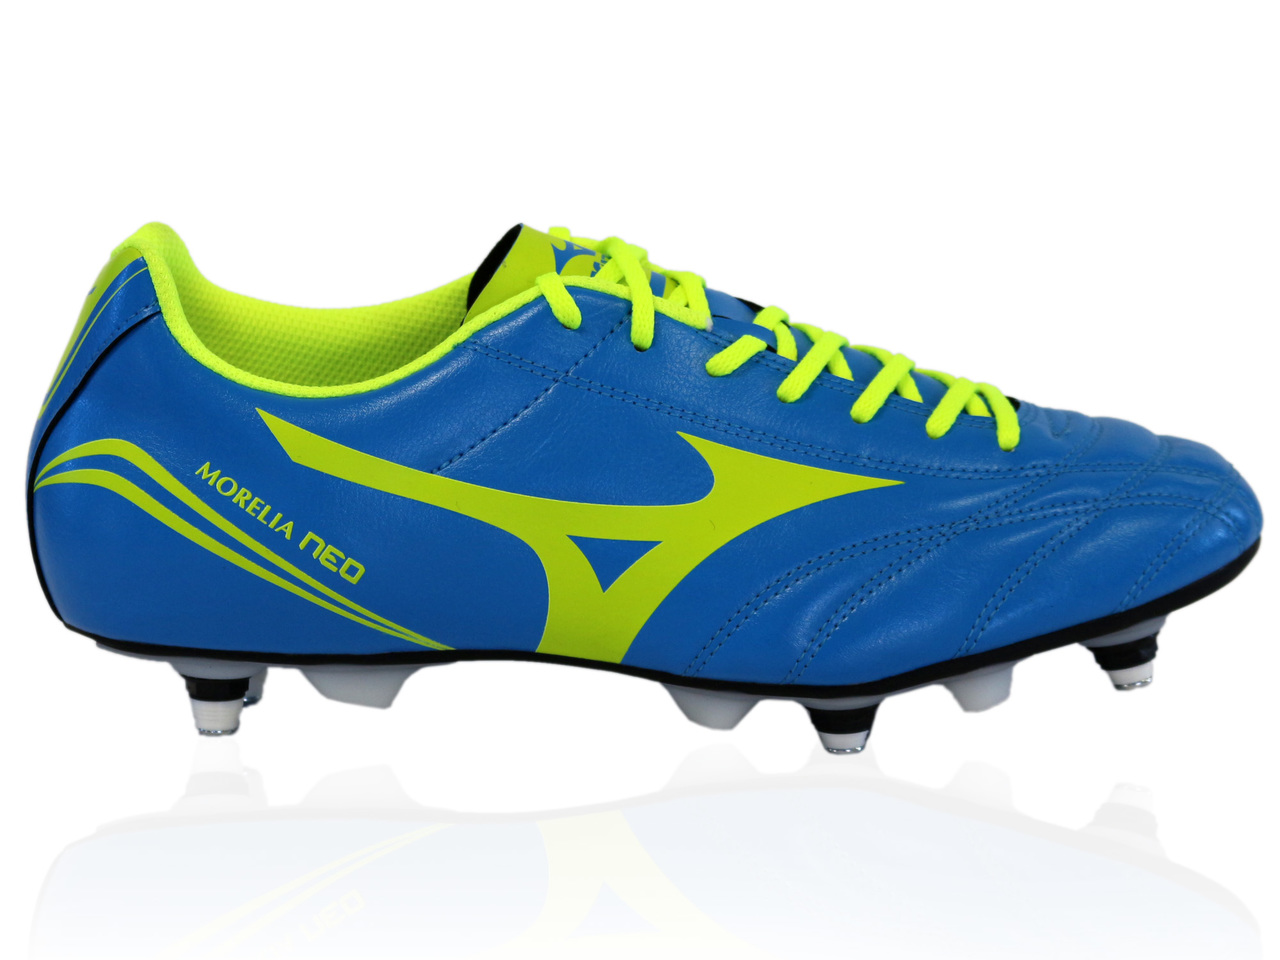 purchase cheap 136dc f6ce5 Mizuno Morelia Neo Classic Rugby Boot SG - Blue/Yellow